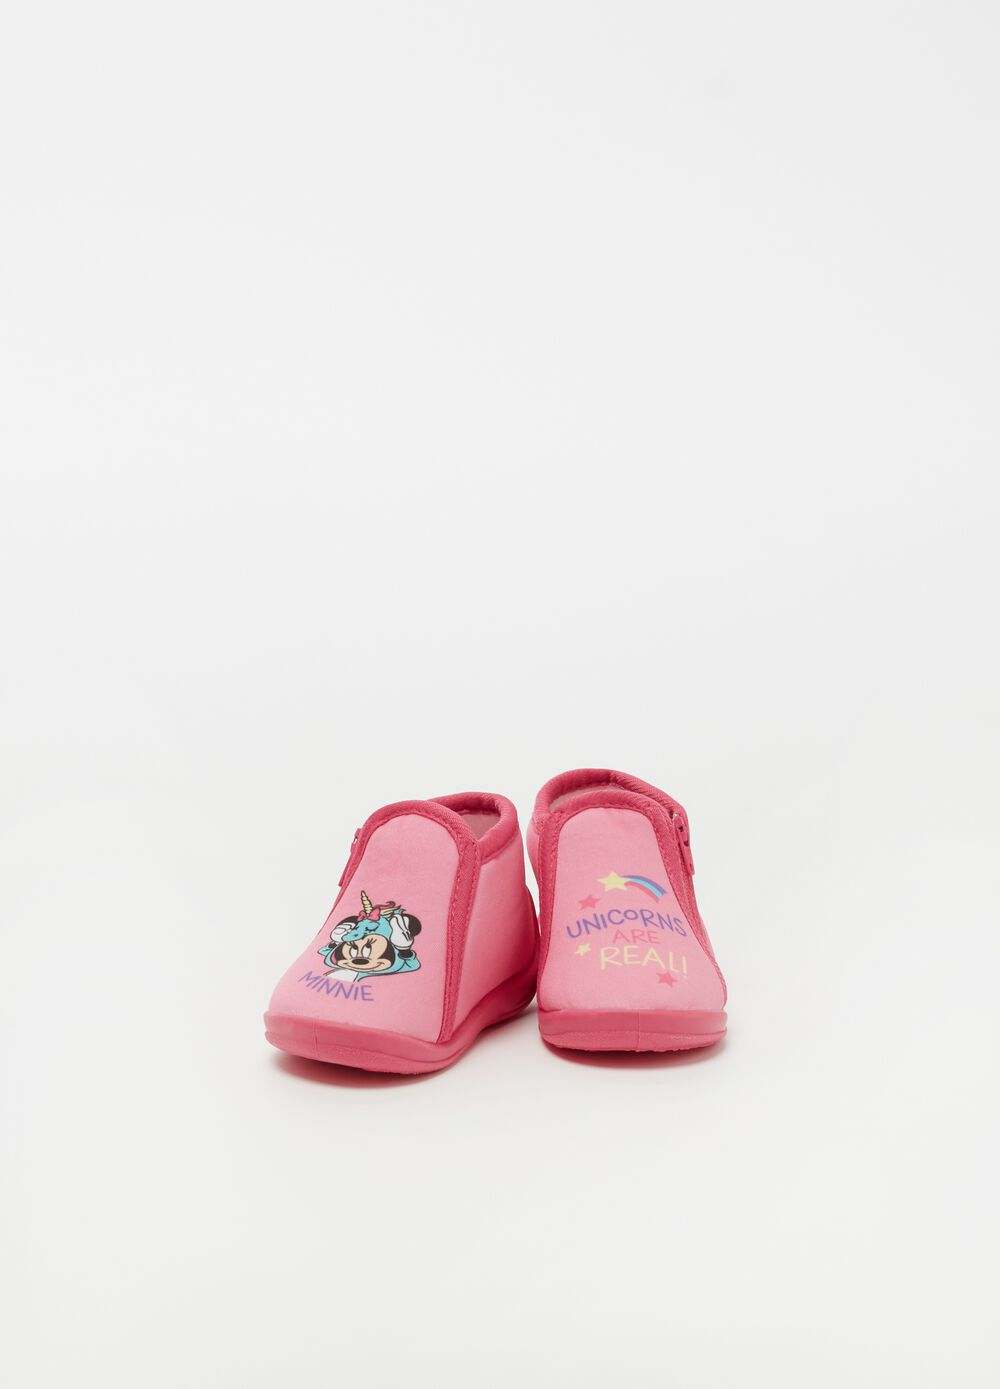 Zapatillas de casa con estampado Disney Minnie